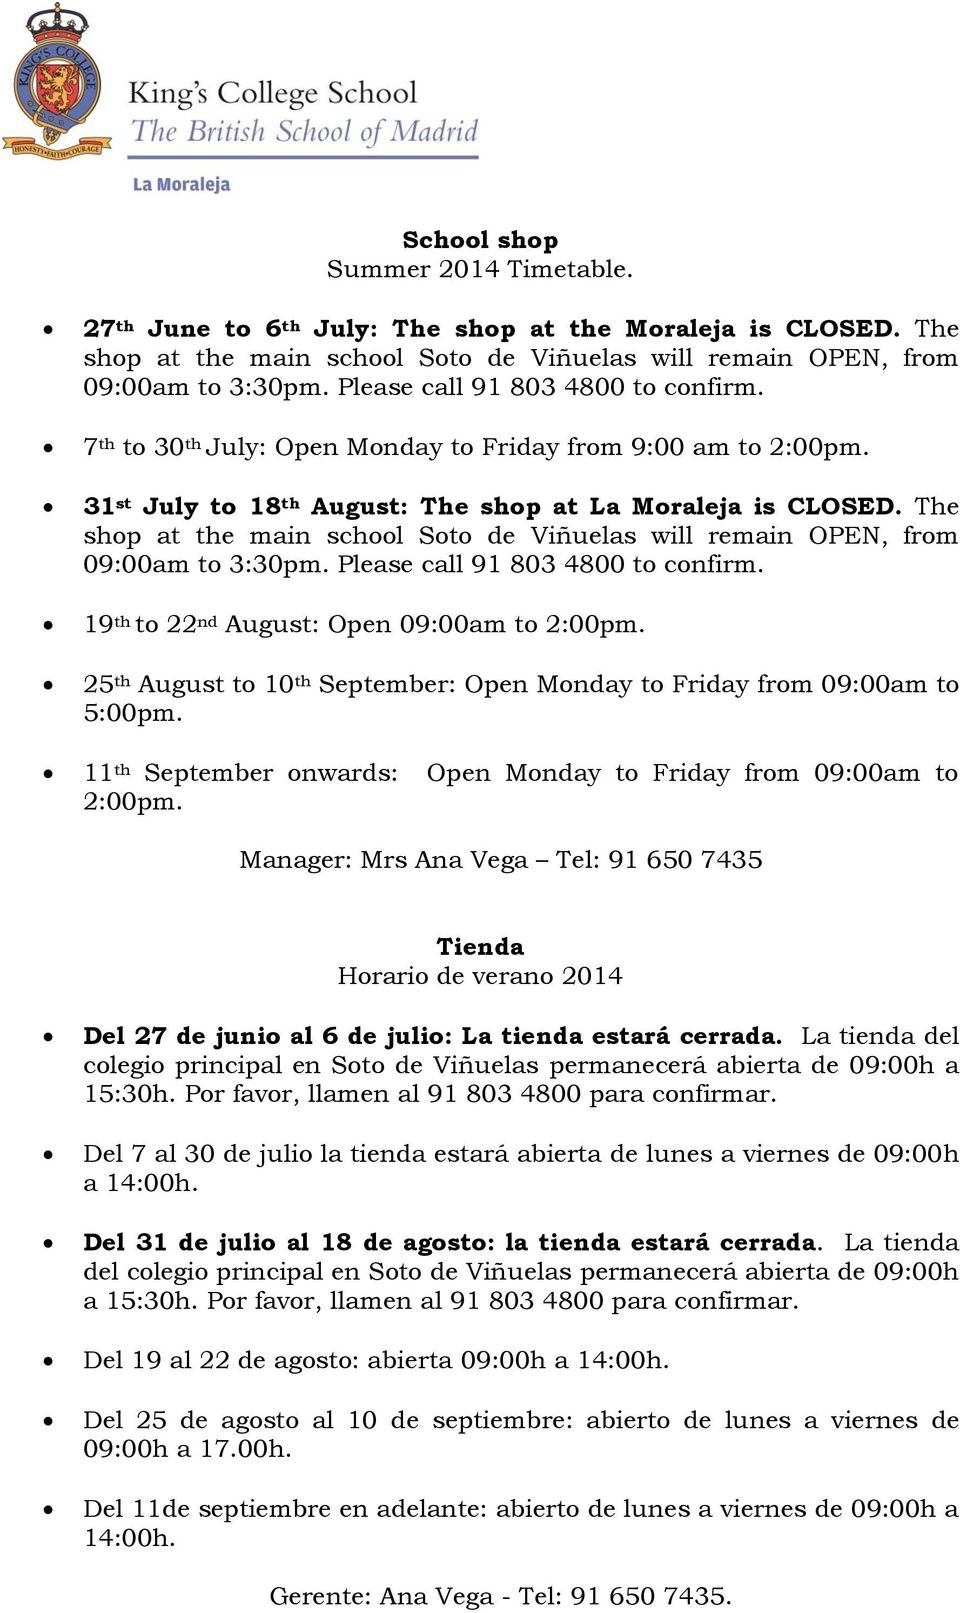 The shop at the main school Soto de Viñuelas will remain OPEN, from 09:00am to 3:30pm. Please call 91 803 4800 to confirm. 19 th to 22 nd August: Open 09:00am to 2:00pm.